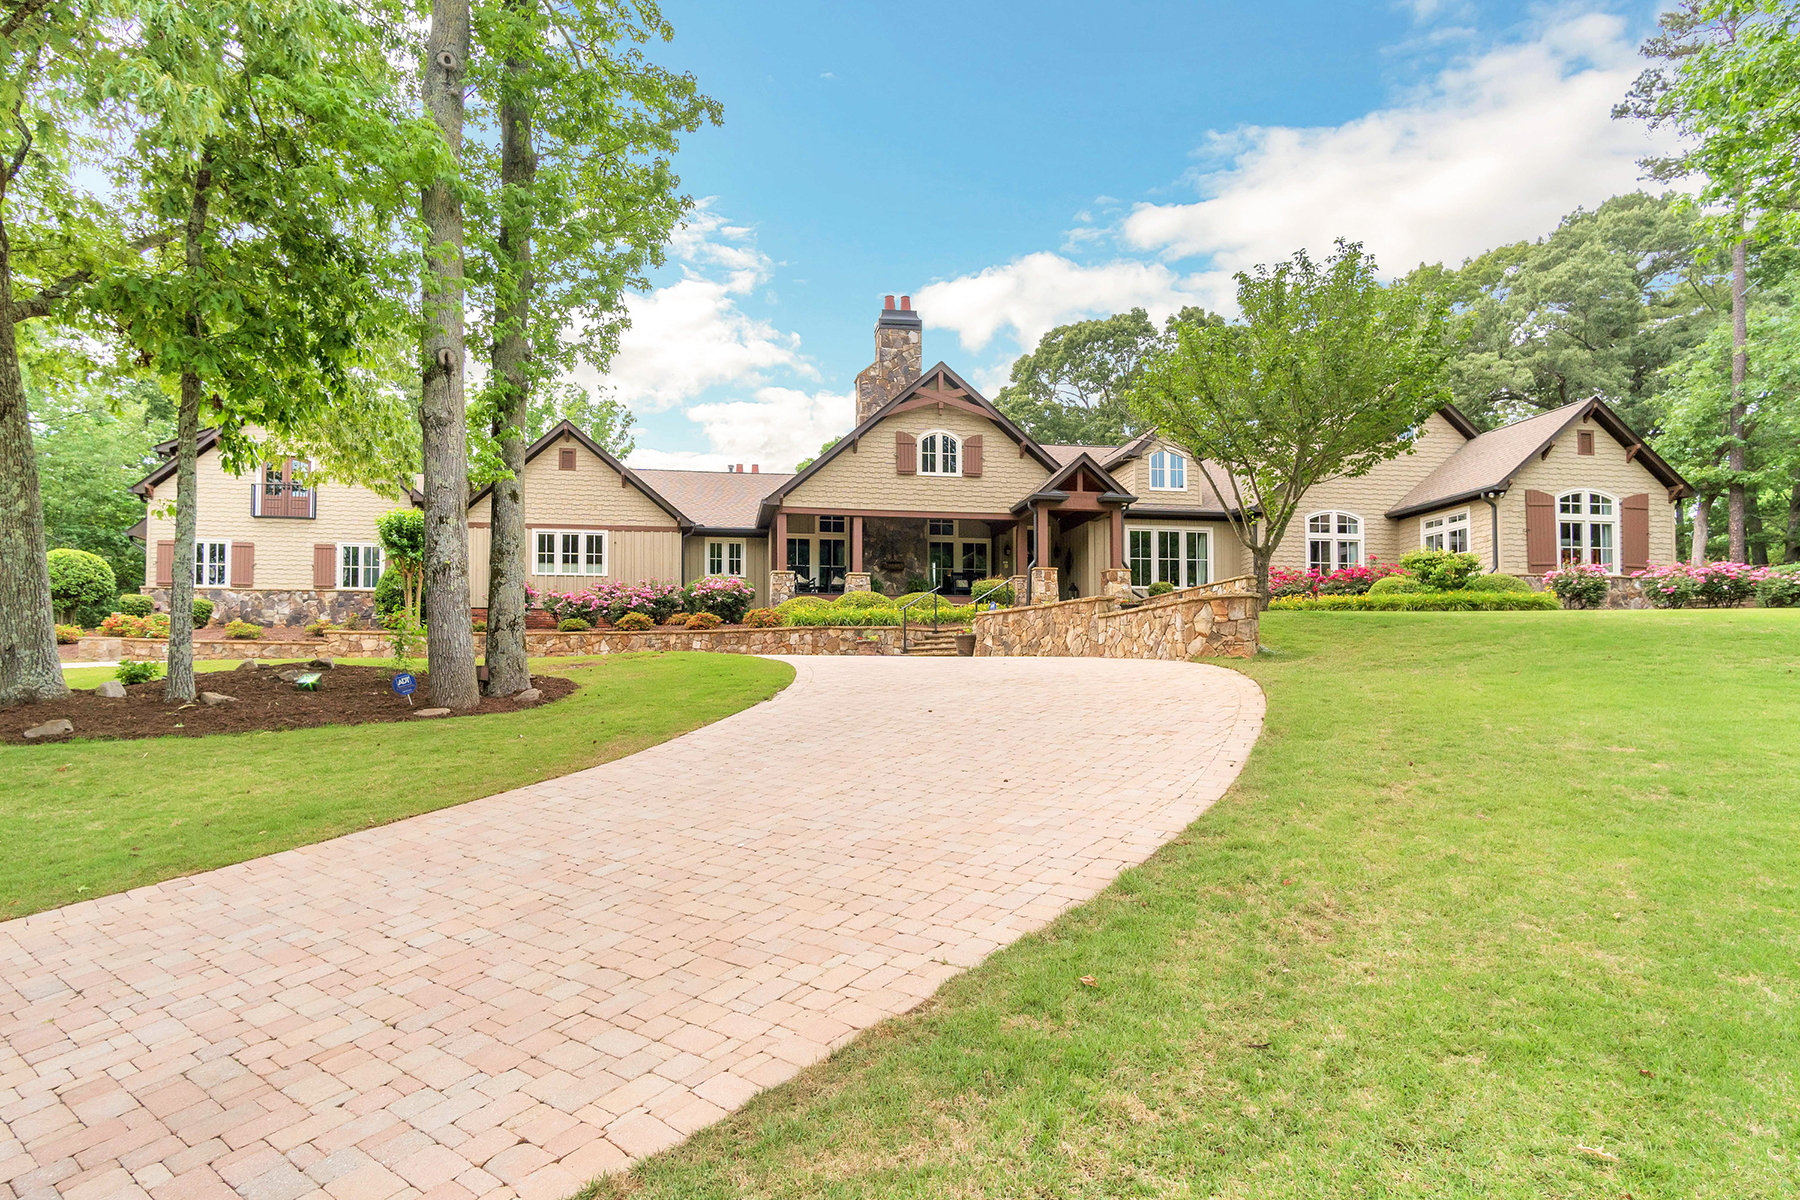 Farm / Ranch / Plantation for Sale at Stunning, Completely Renovated, Private, and Gated 25 Acre Equestrian Estate! 3961 Sloan Mill Road Gainesville, Georgia 30507 United States